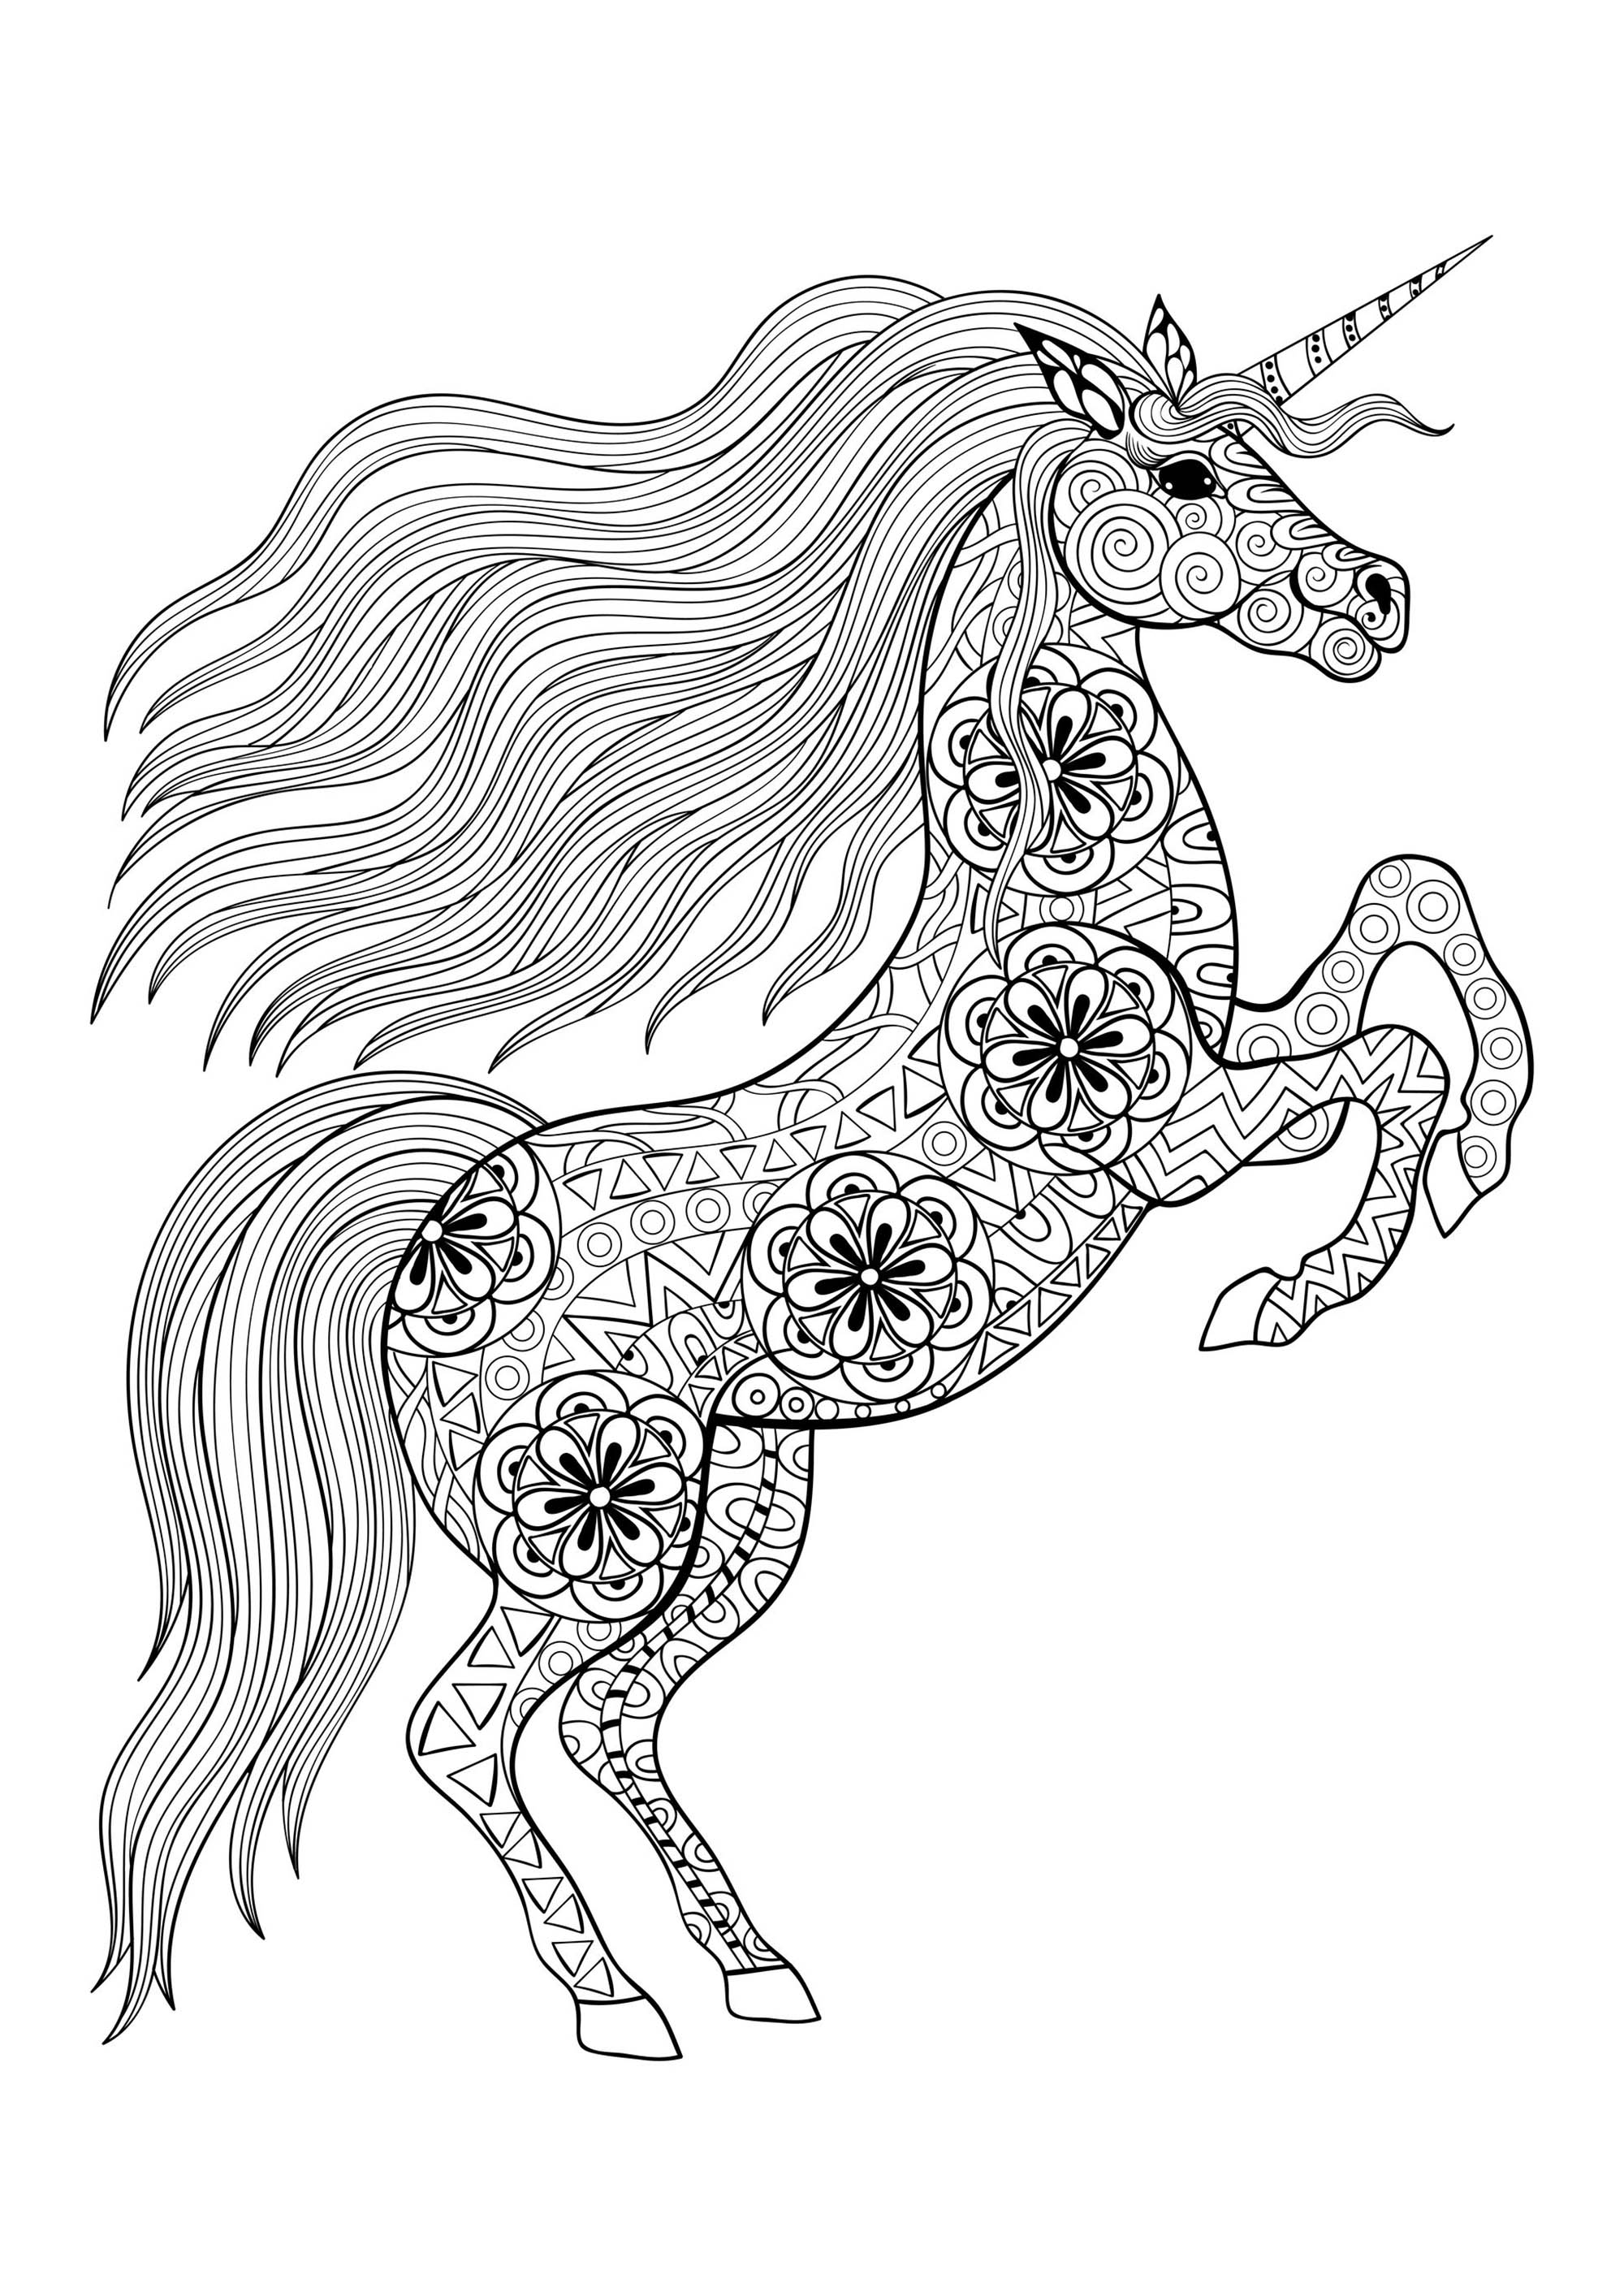 unicorn coloring videos chibi unicorn coloring pages easy clipart free printable unicorn videos coloring